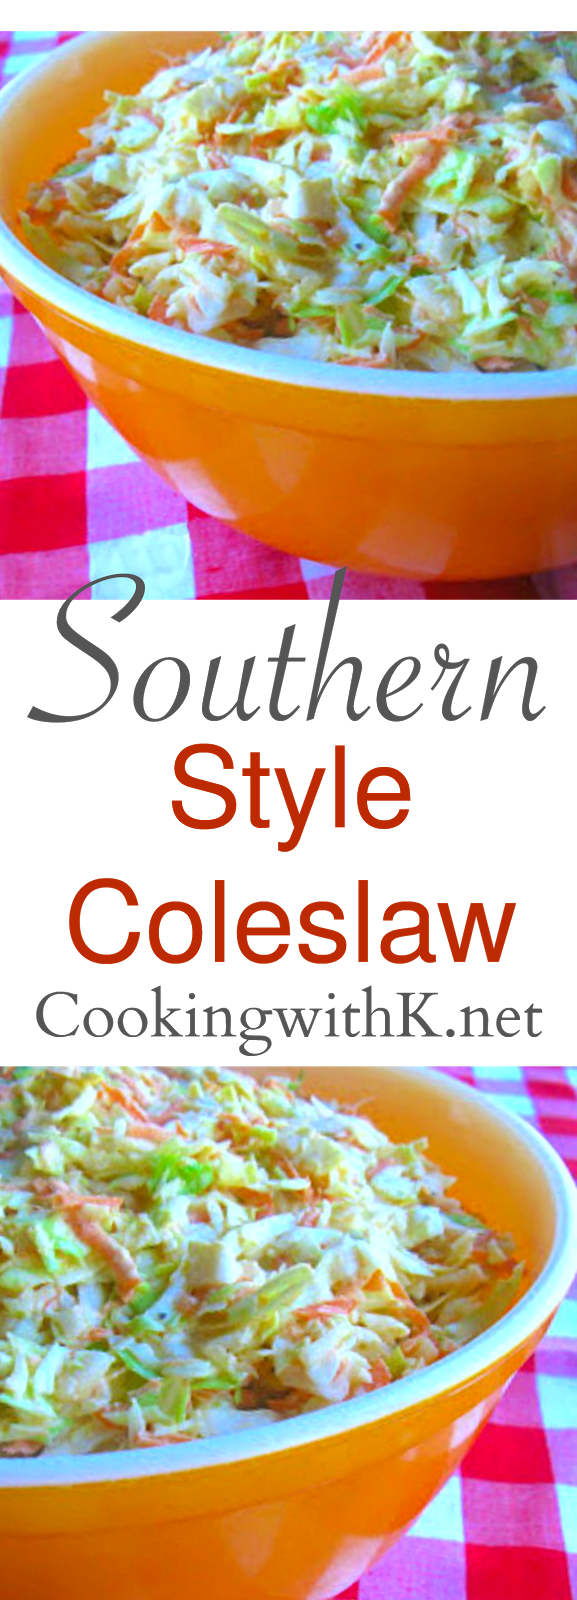 Style Coleslaw + How to make the dressing to go on it! {Granny's Recipe} This Southern Style Coleslaw is a quick and easy side dish served up with a lot of Southern dishes, BBQ, fried chicken and catfish.  A few simple ingredients are all you need.This Southern Style Coleslaw is a quick and easy side dish served up with a lot of Southern dishes, BBQ, fri...